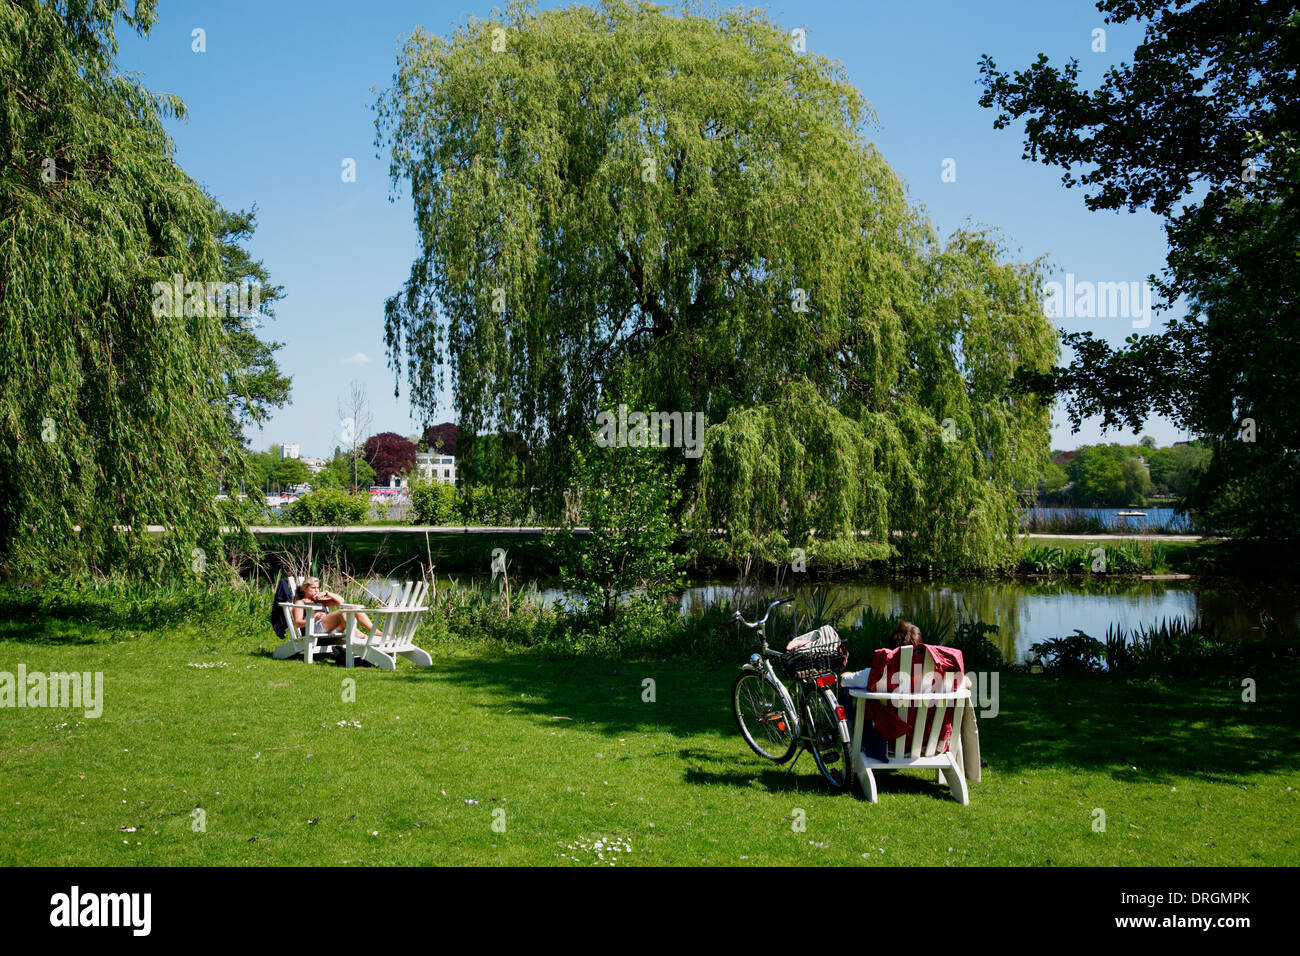 Sunbath in a park at  Lake Outer Alster (Aussenalster), Hamburg, Germany, Europe - Stock Image